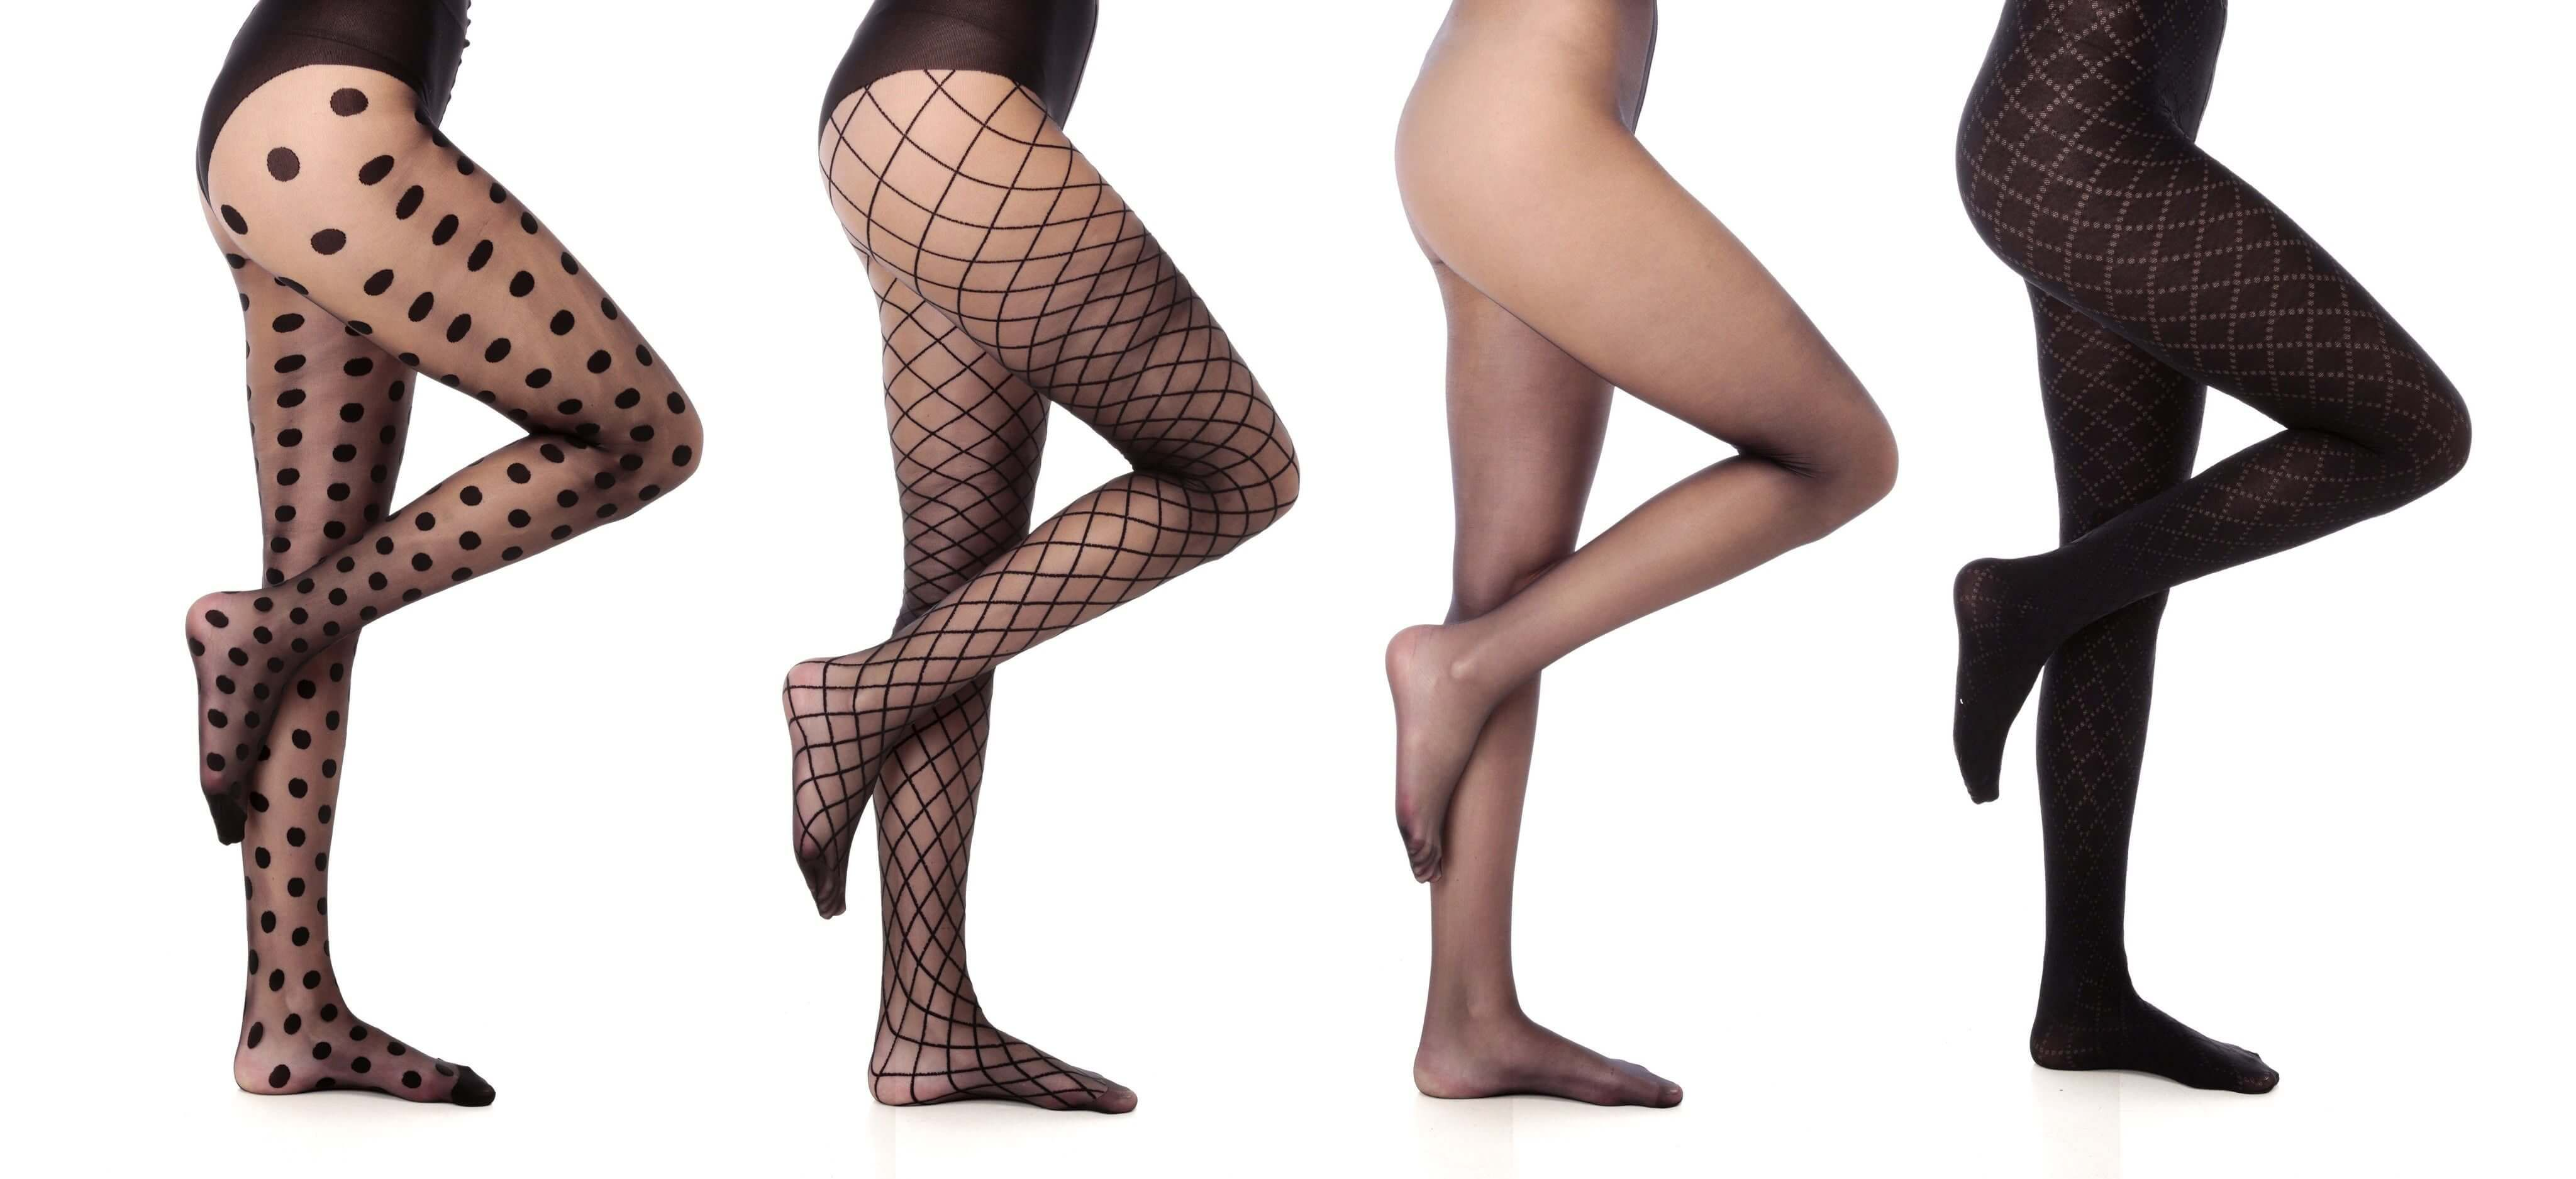 sous-vêtements collants